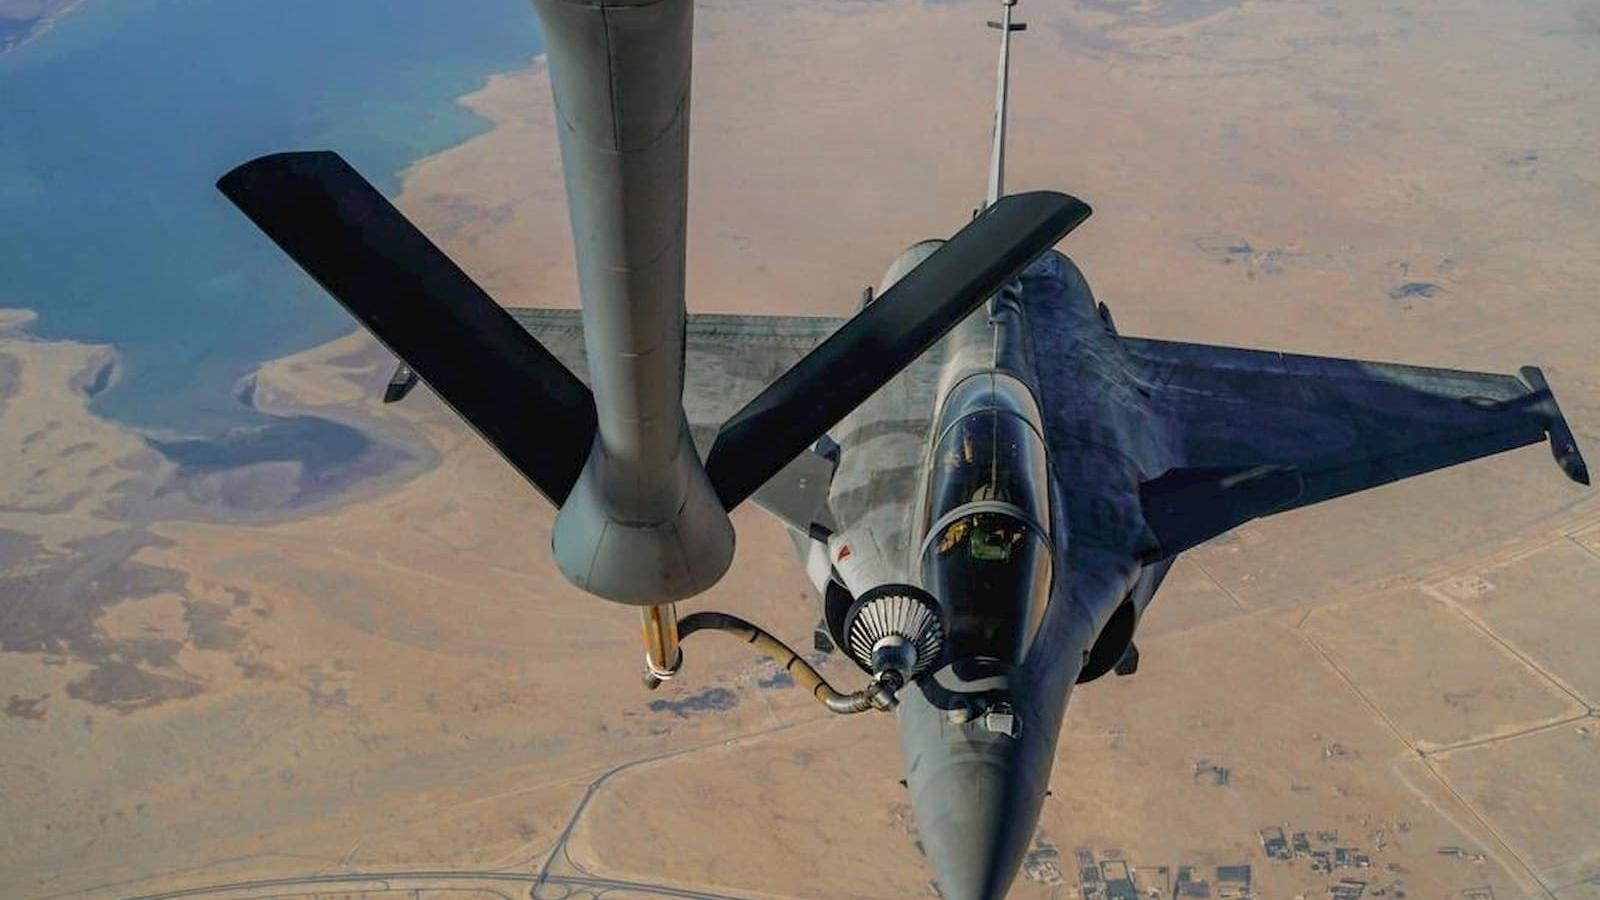 Qatar Amiri Air Force conducts aerial refueling exercise with US Air Force